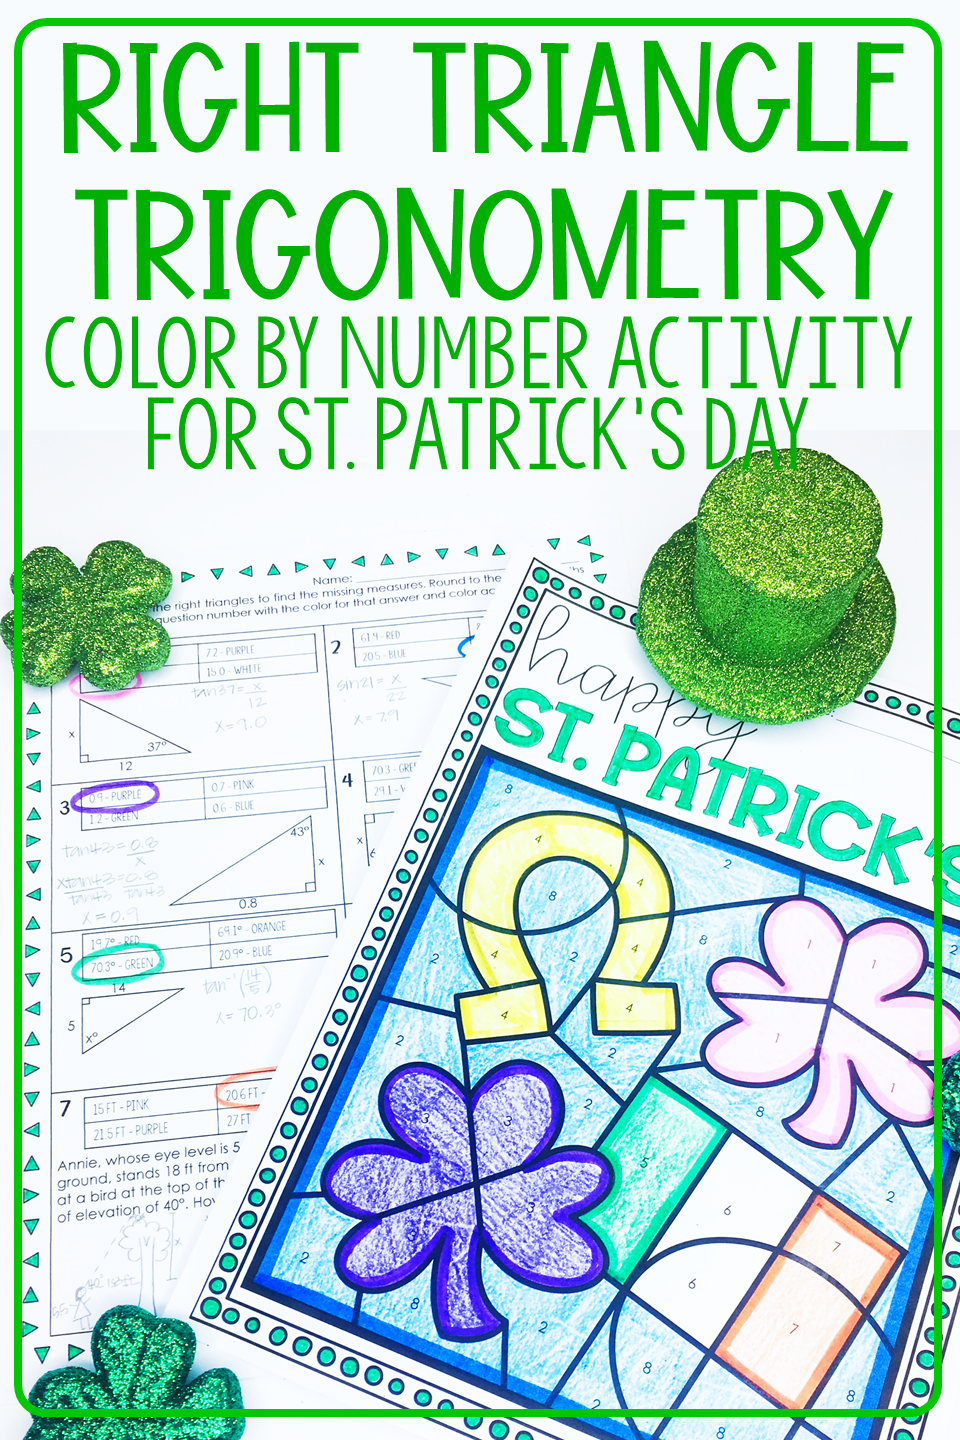 medium resolution of ST. PATRICK'S DAY Geometry   Right Triangle Trig Coloring Activity   Trigonometry  worksheets